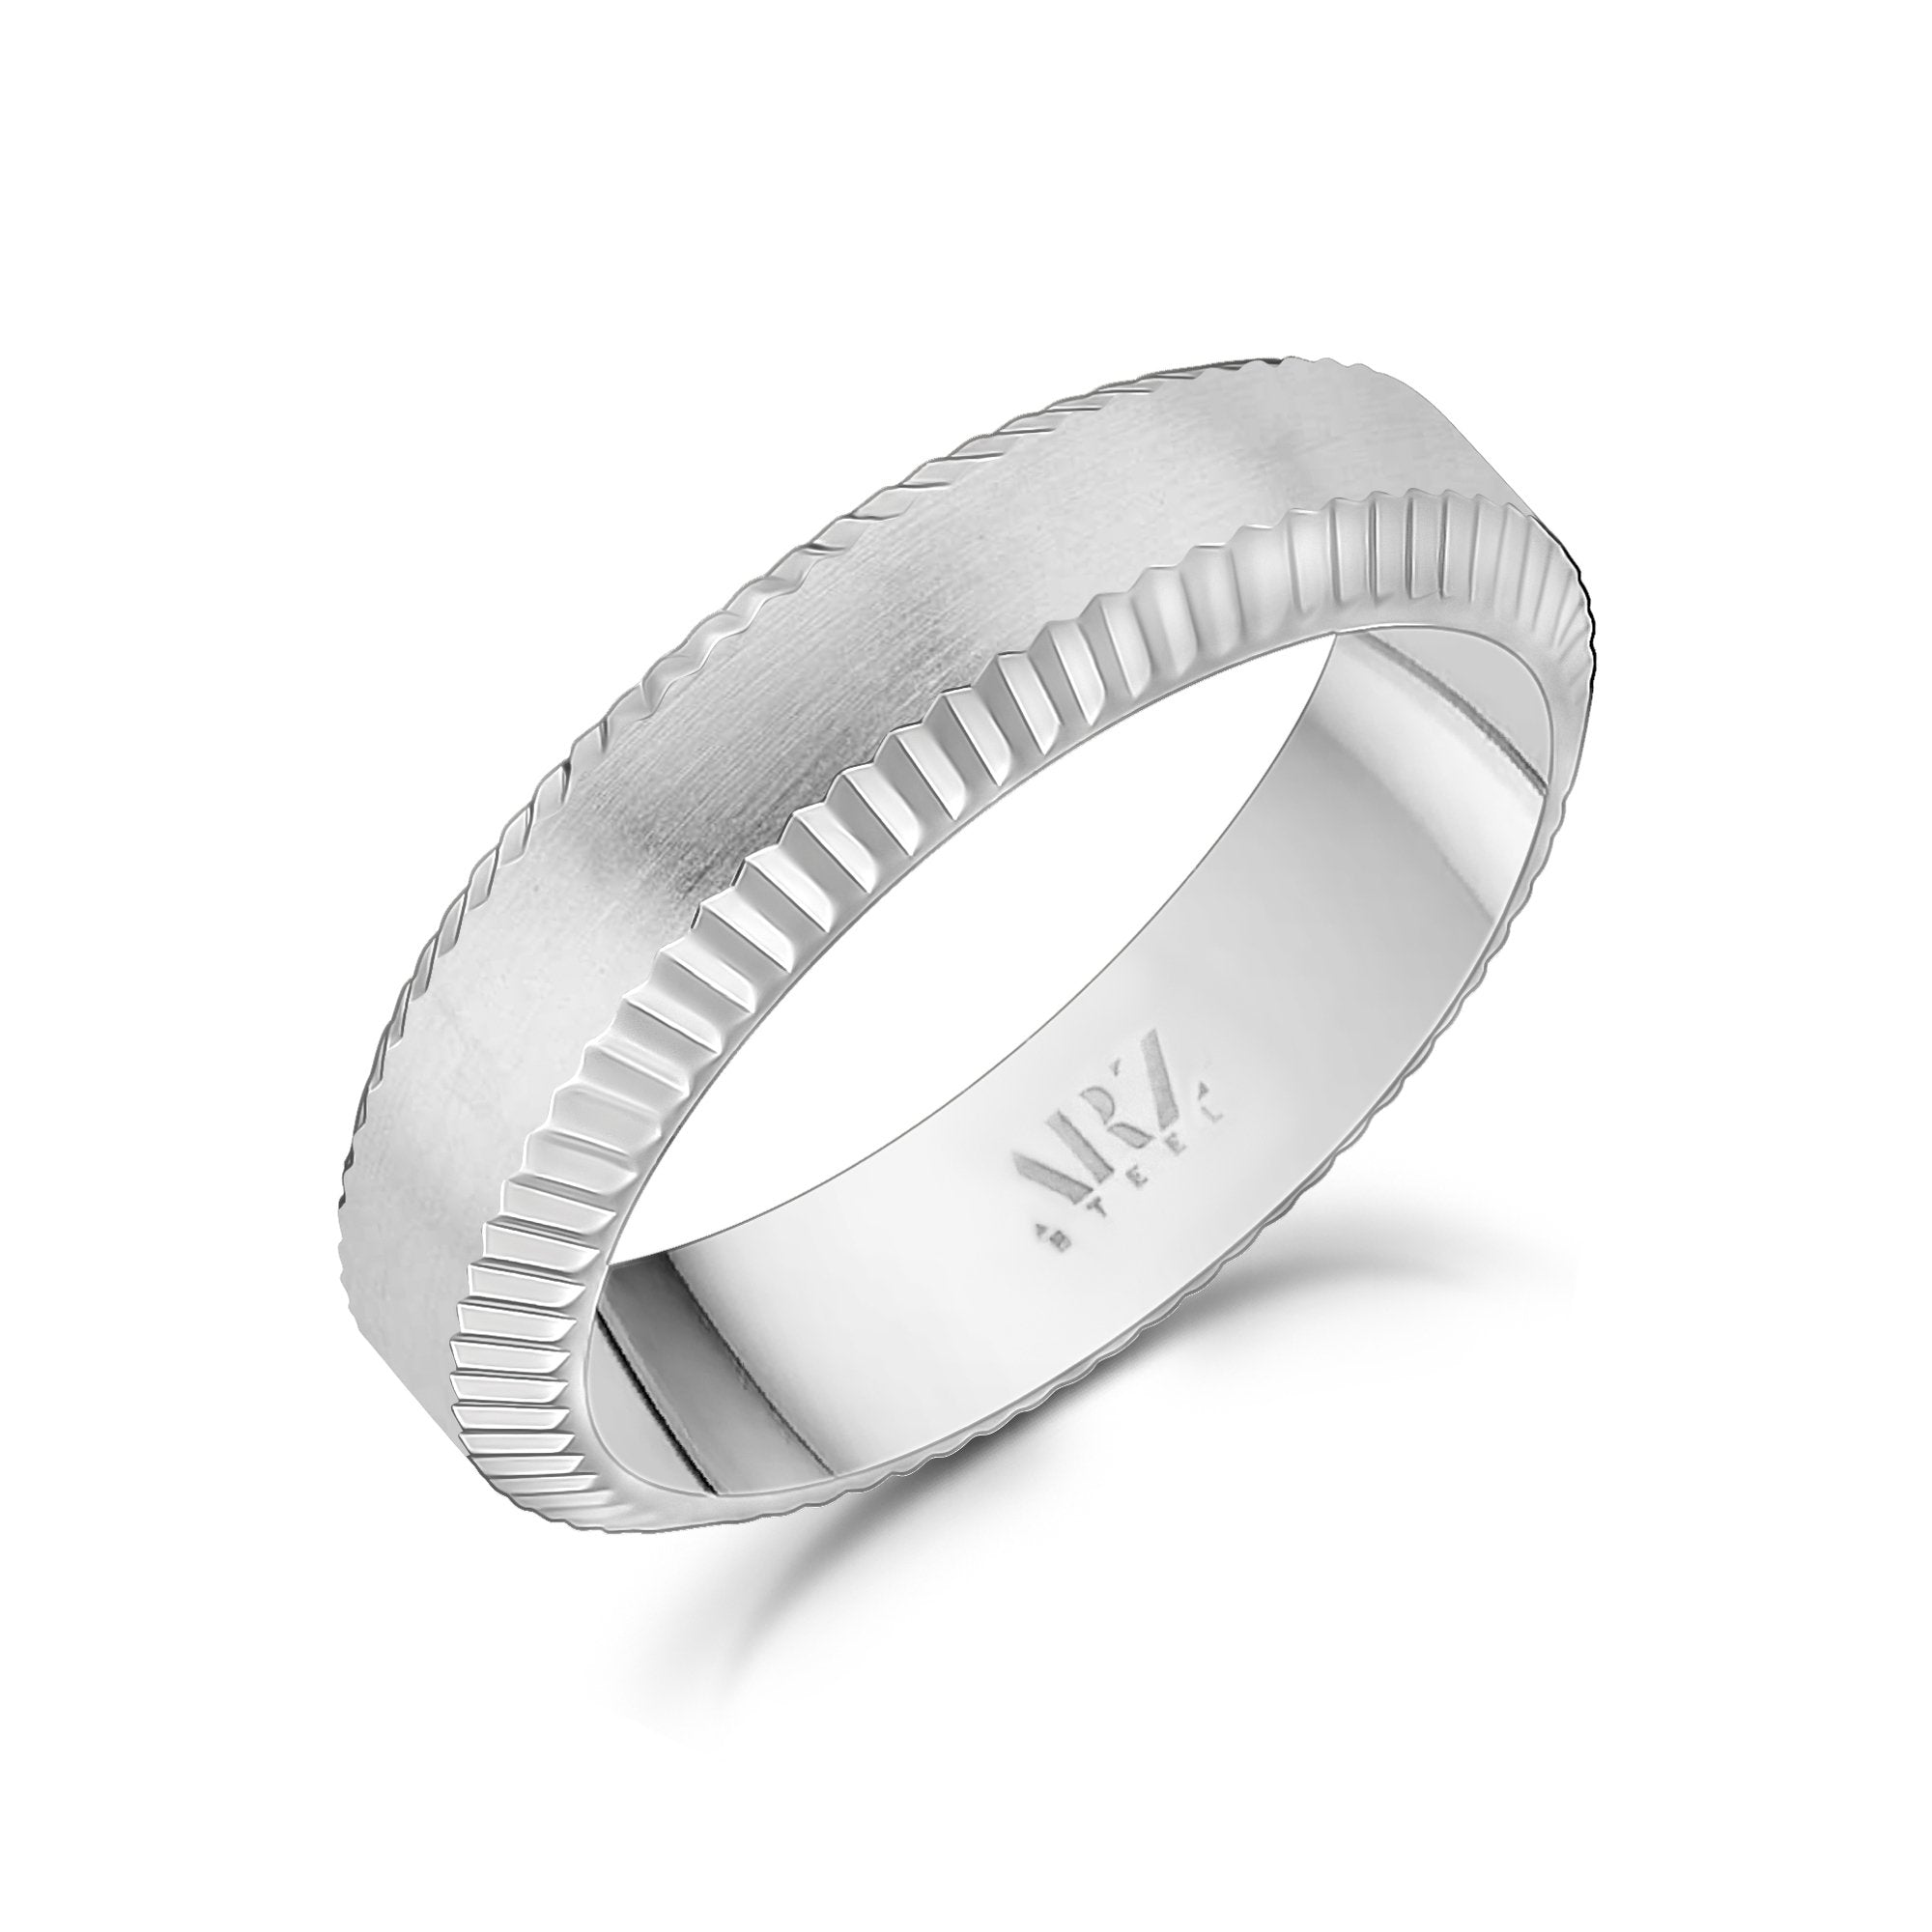 Men Ring - 6mm Beveled Edge Flat Steel Engravable Band Ring